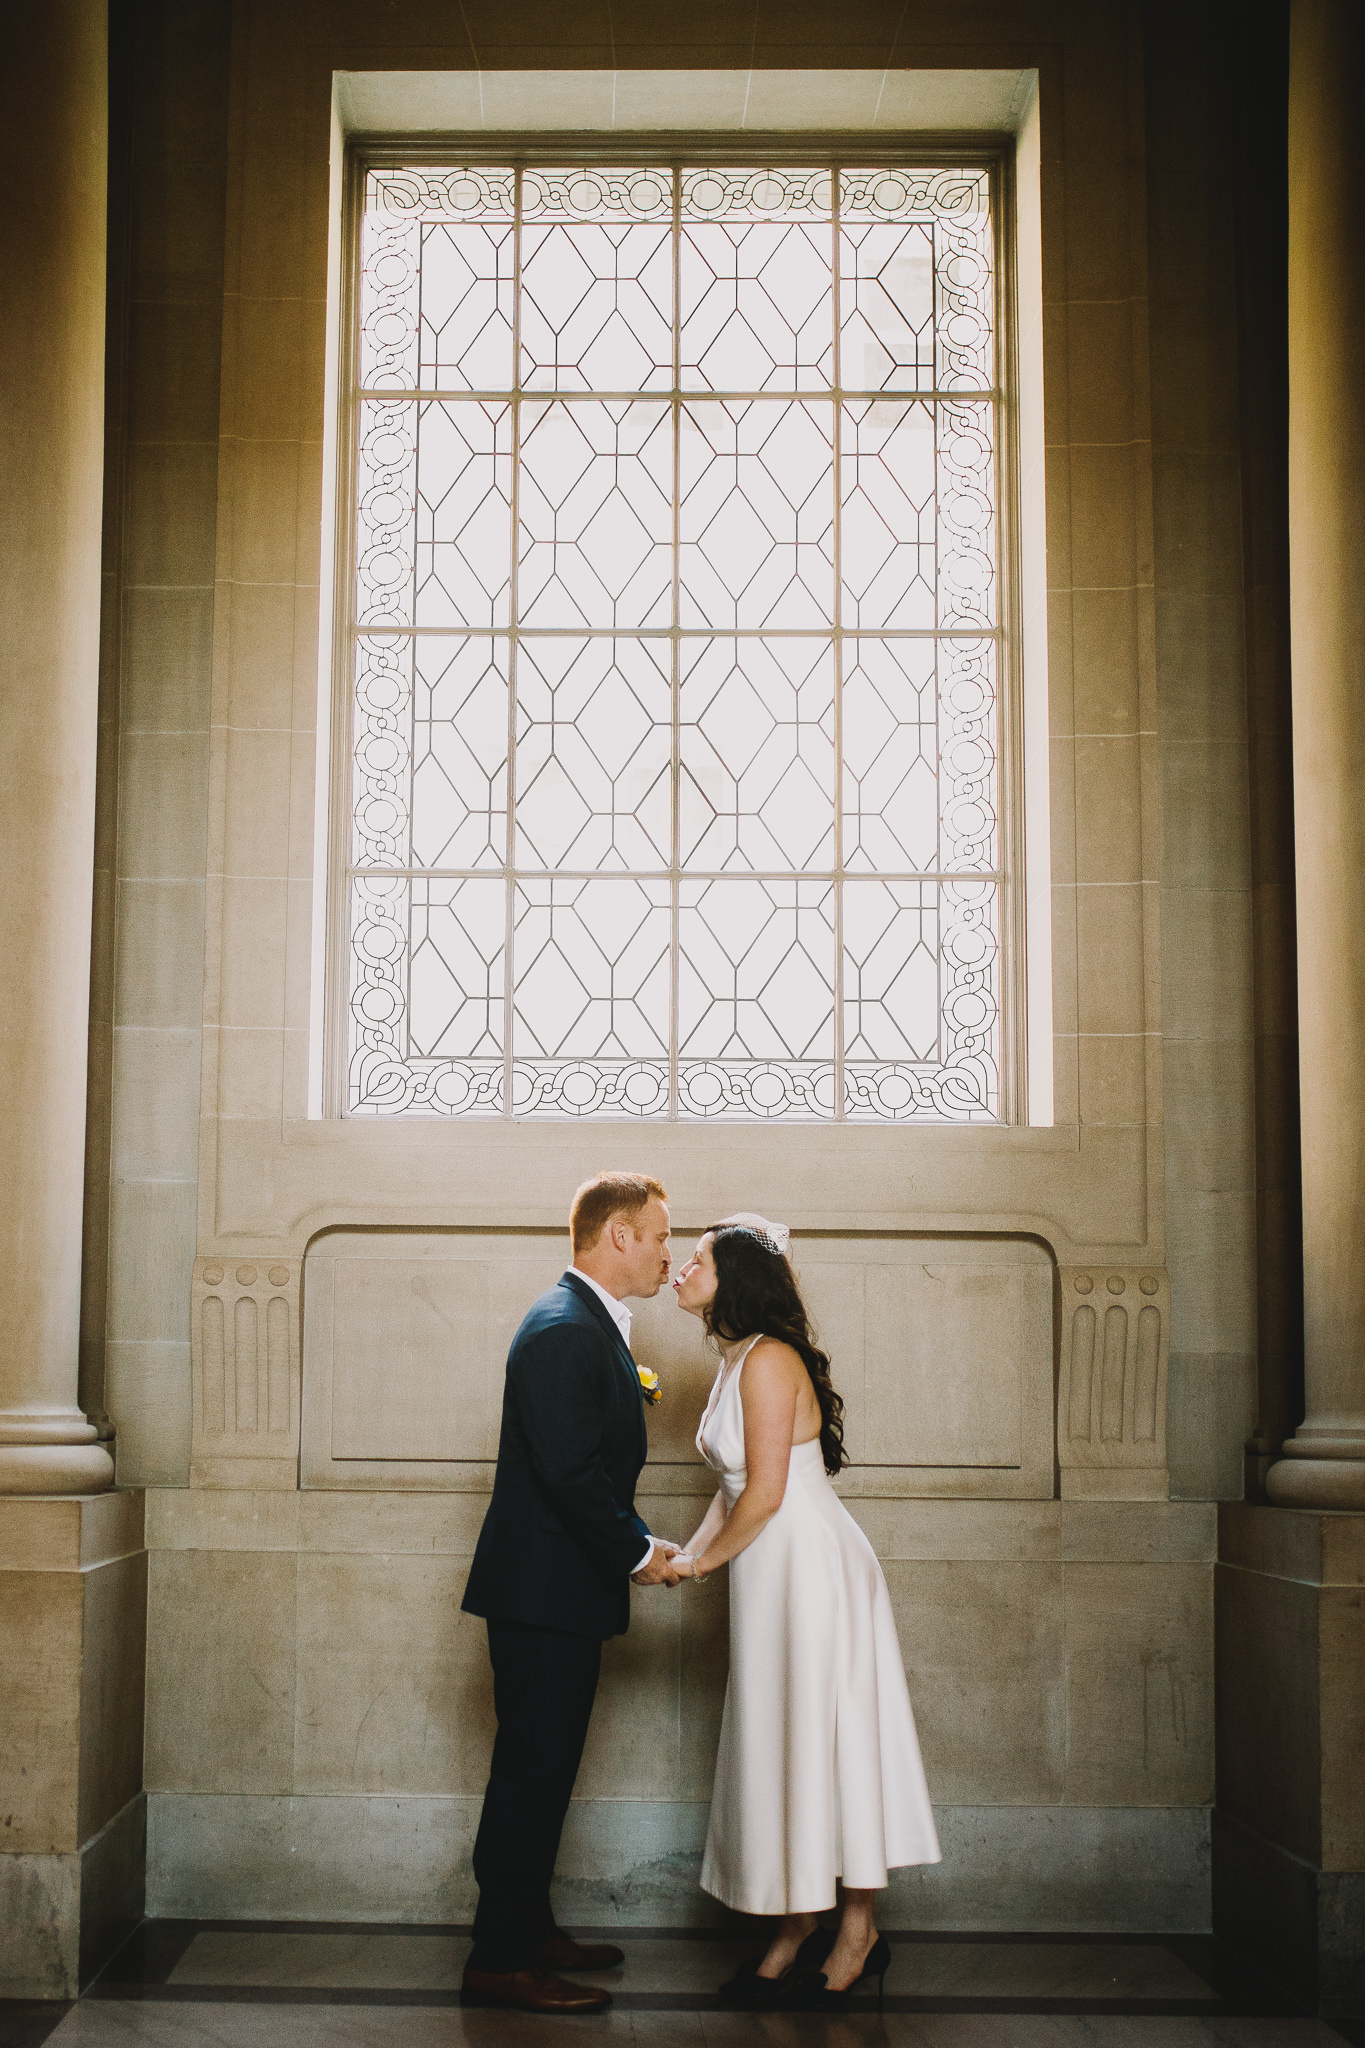 Archer Inspired Photography SF City Hall Elopement Wedding Lifestyle Documentary Affordable Photographer-164.jpg